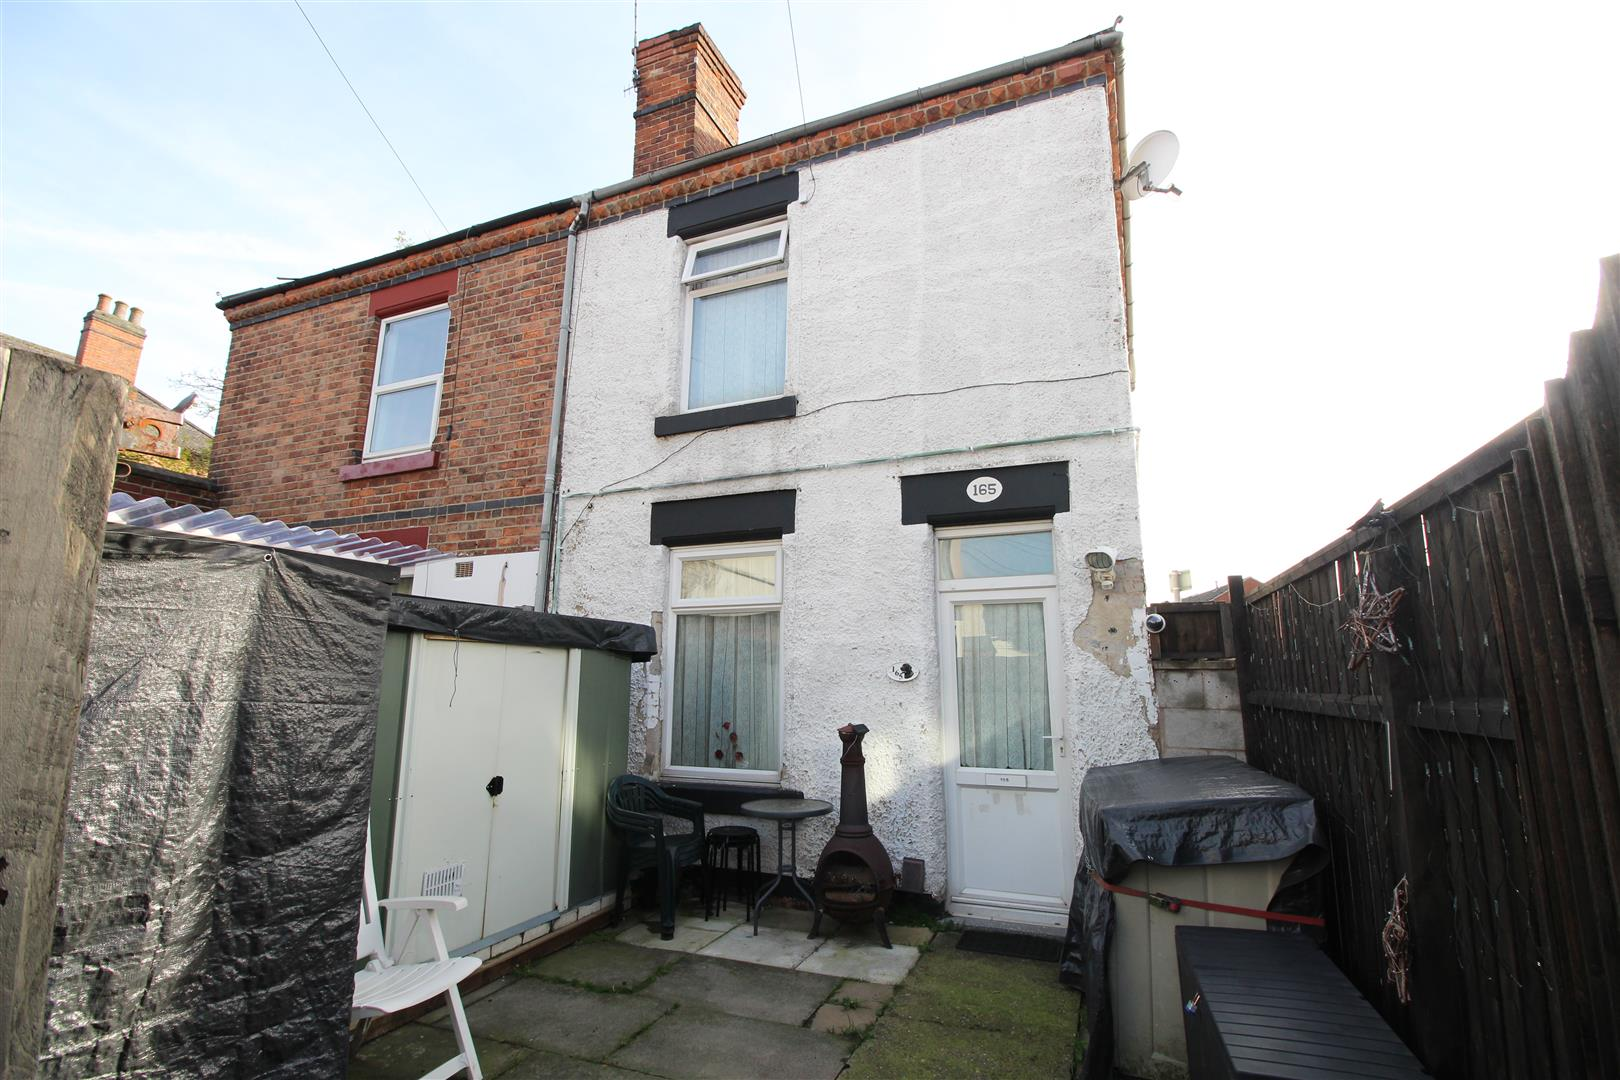 2 Bedrooms Semi Detached House for sale in Derby Road, Stapleford, Nottingham